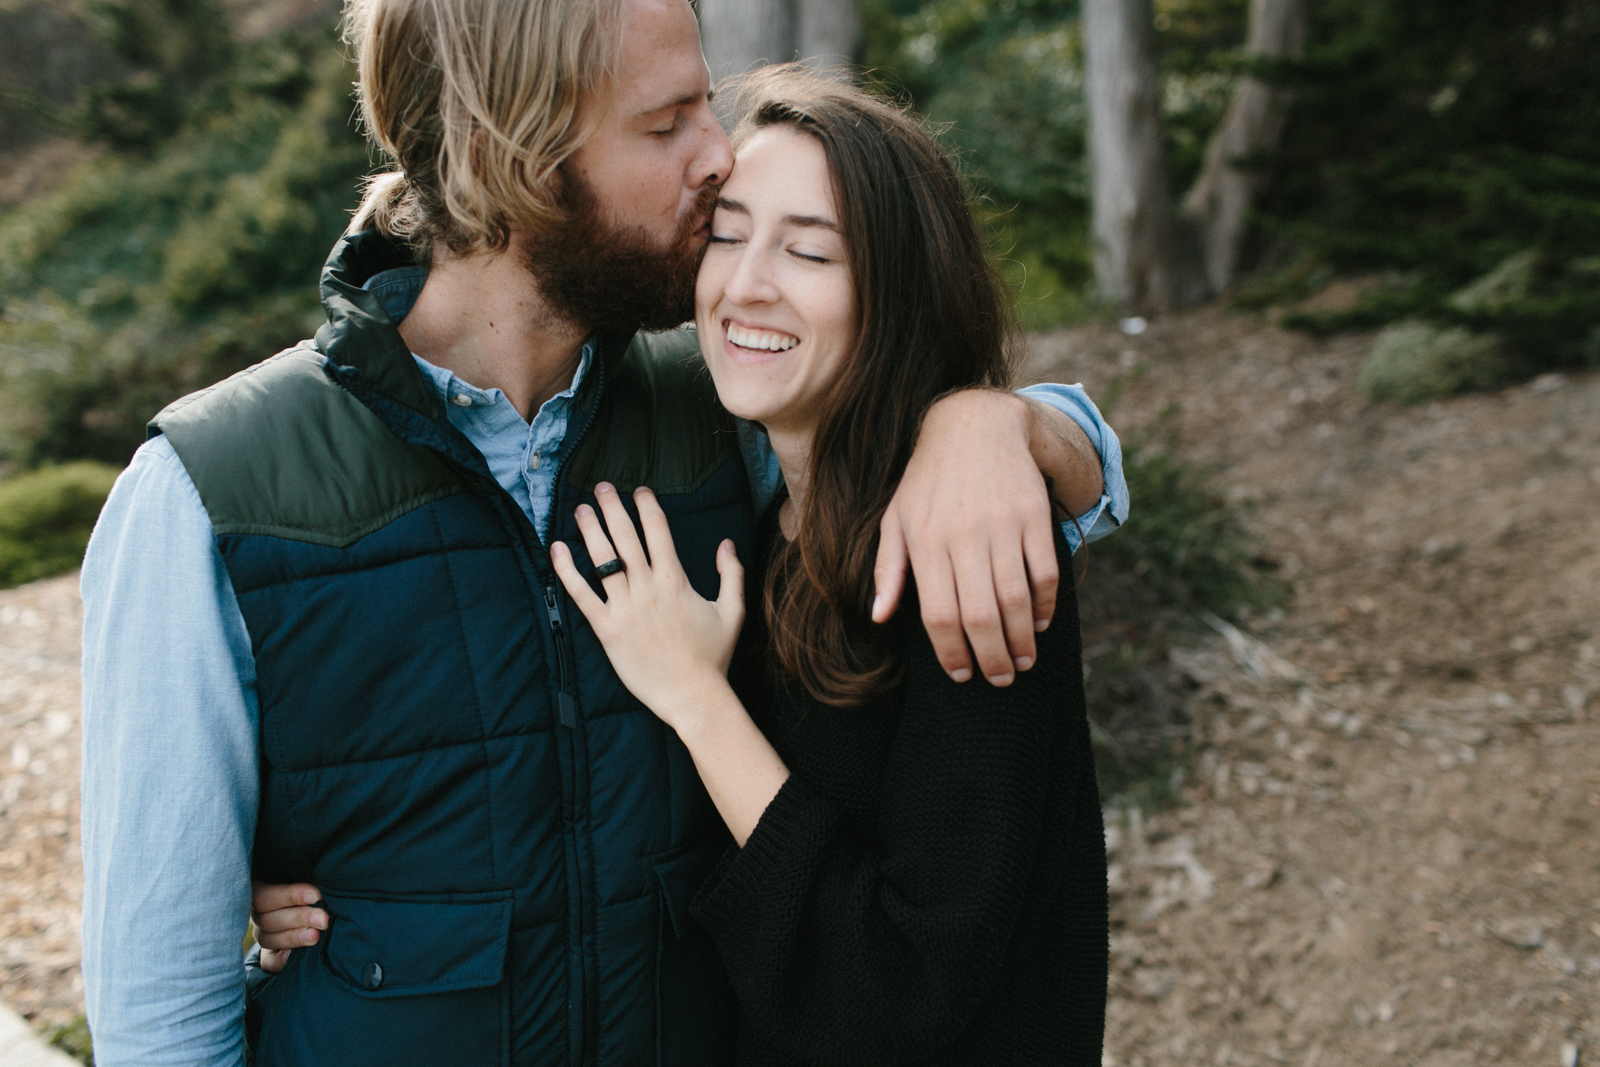 San Francisco Engagement Photography by Bay Area Wedding Photographer Mae Stier-010.jpg